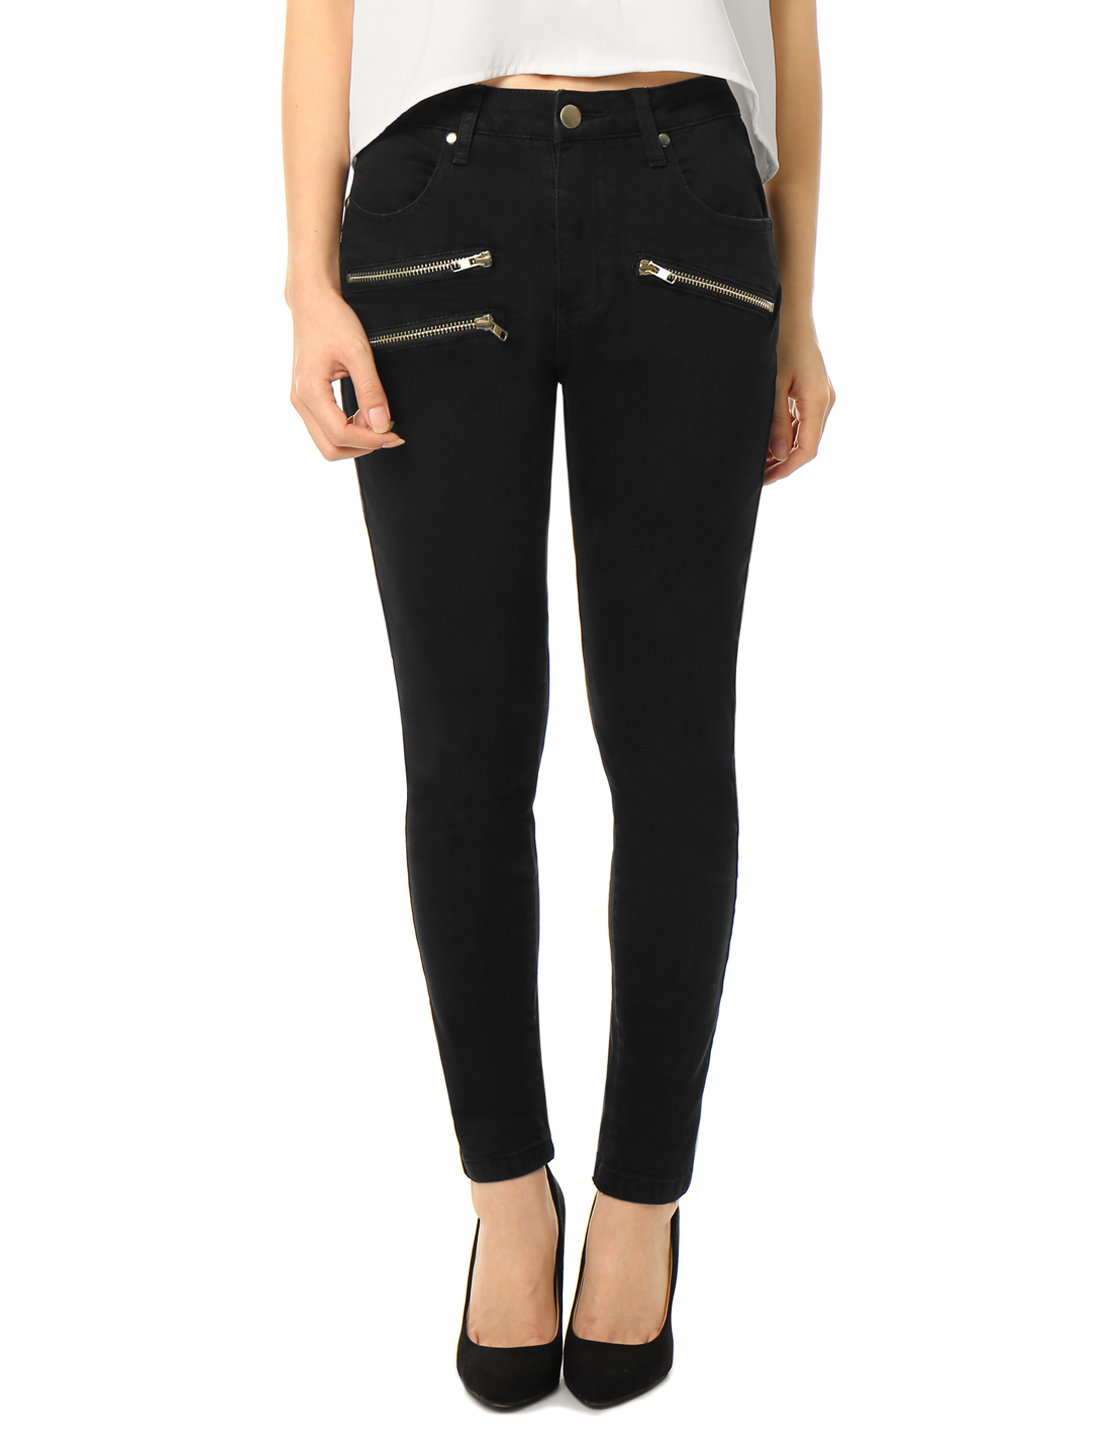 Women Mid Rise Zipper Decor Stretchy Skinny Jeans Black XL